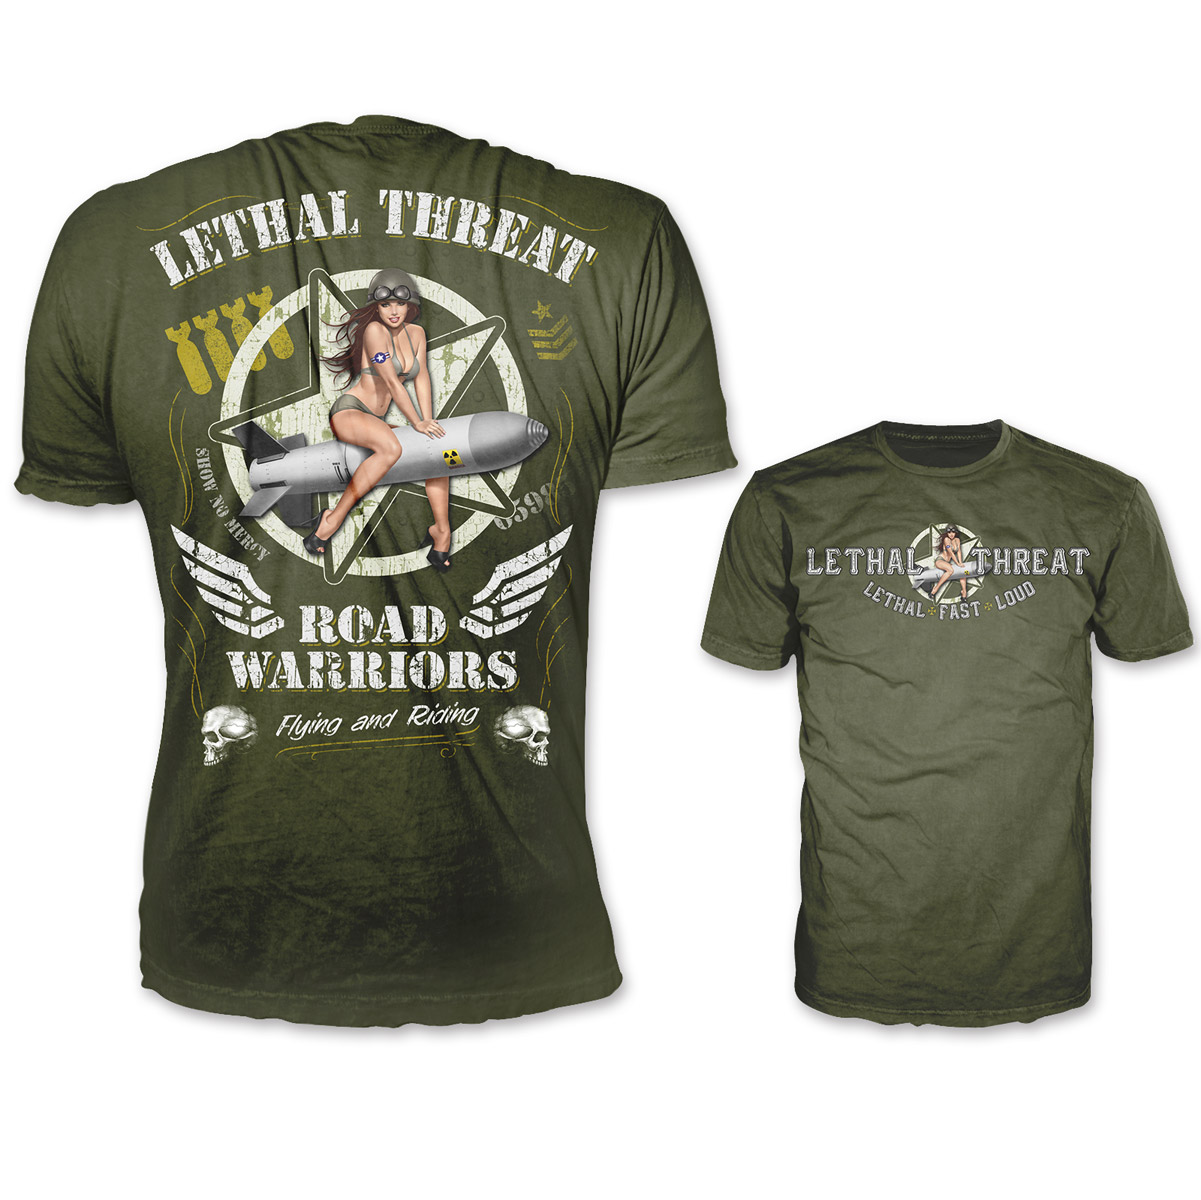 Lethal Threat Men s To Hell And Back Army Green T-Shirt - LT20354-XL bf1978704a3